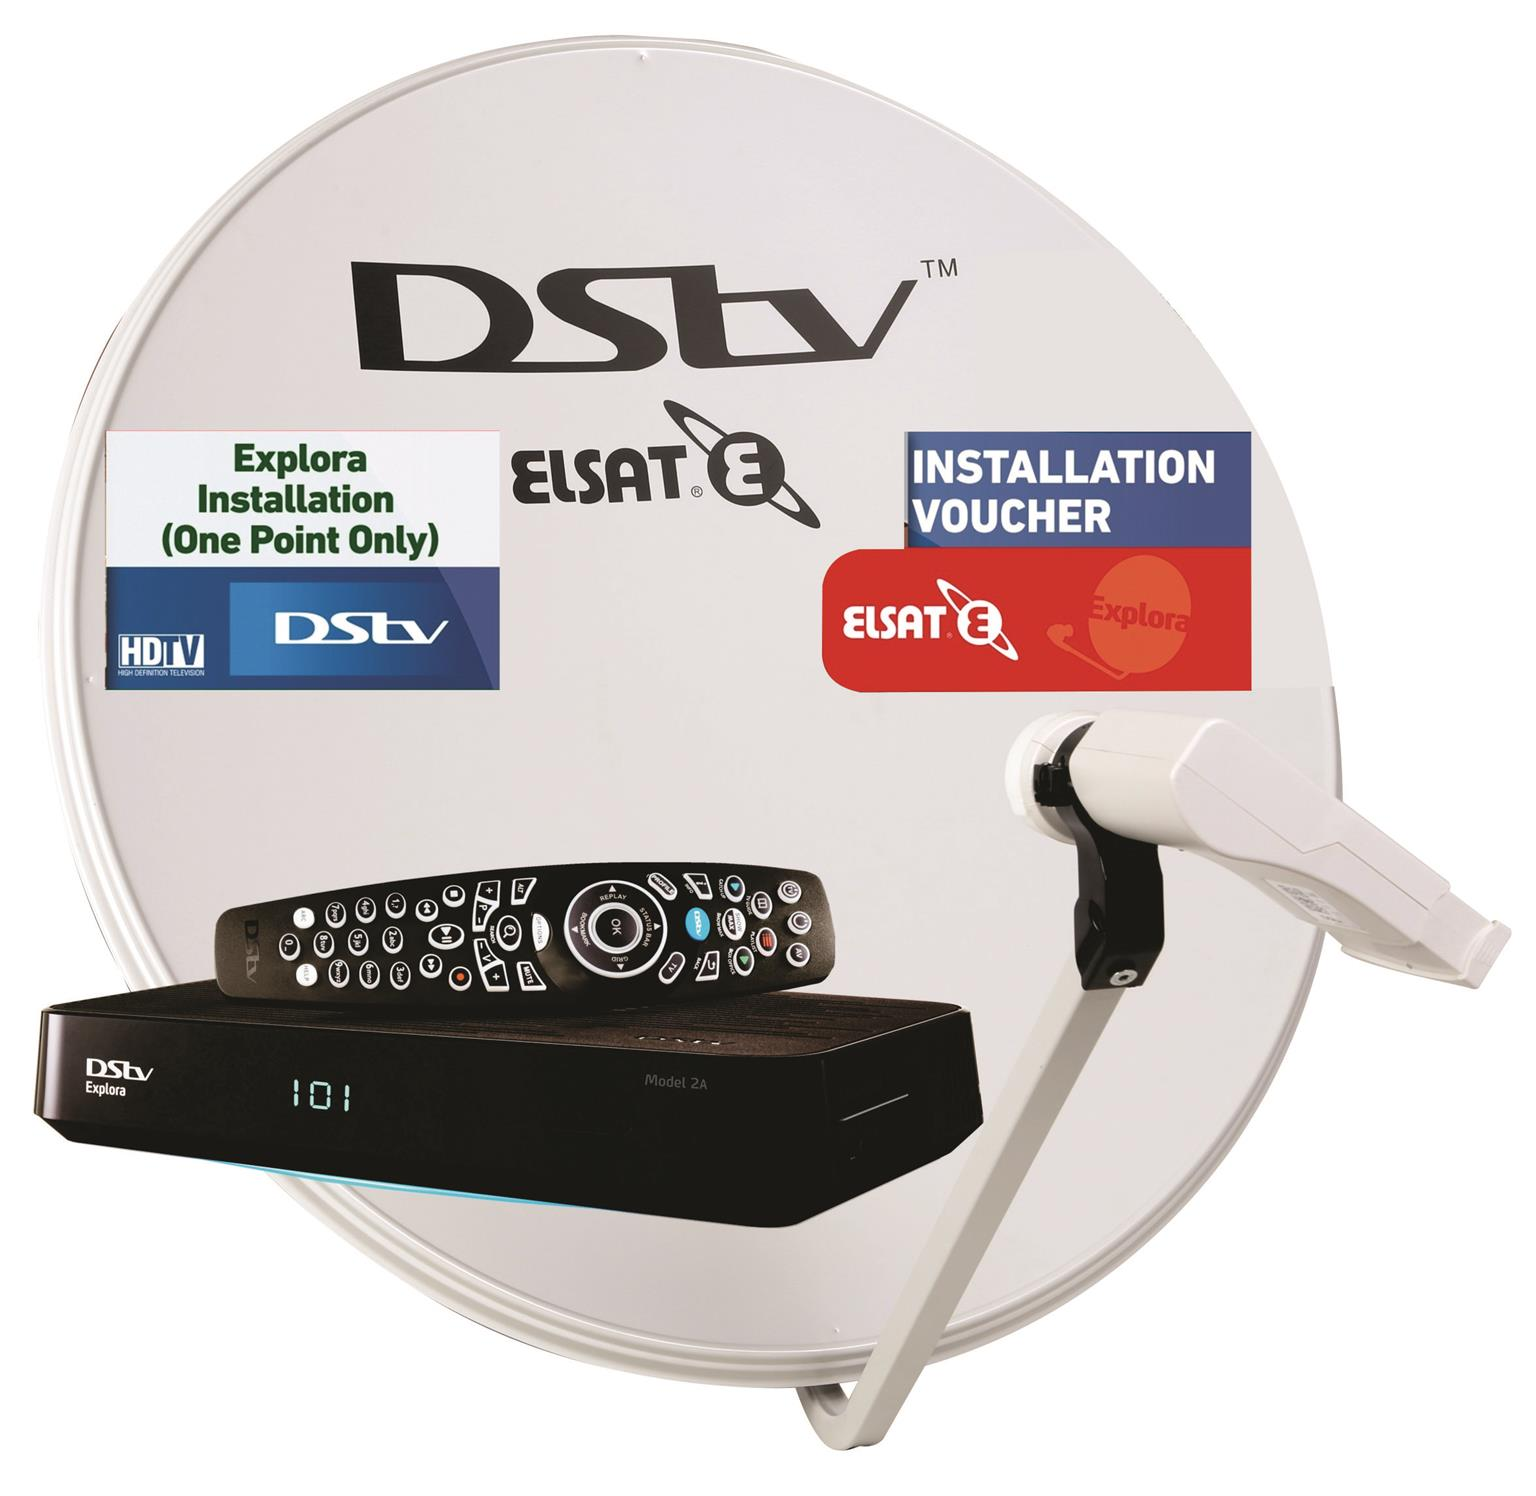 ACCREDITED DSTV INSTALLERS CALL 0837712485